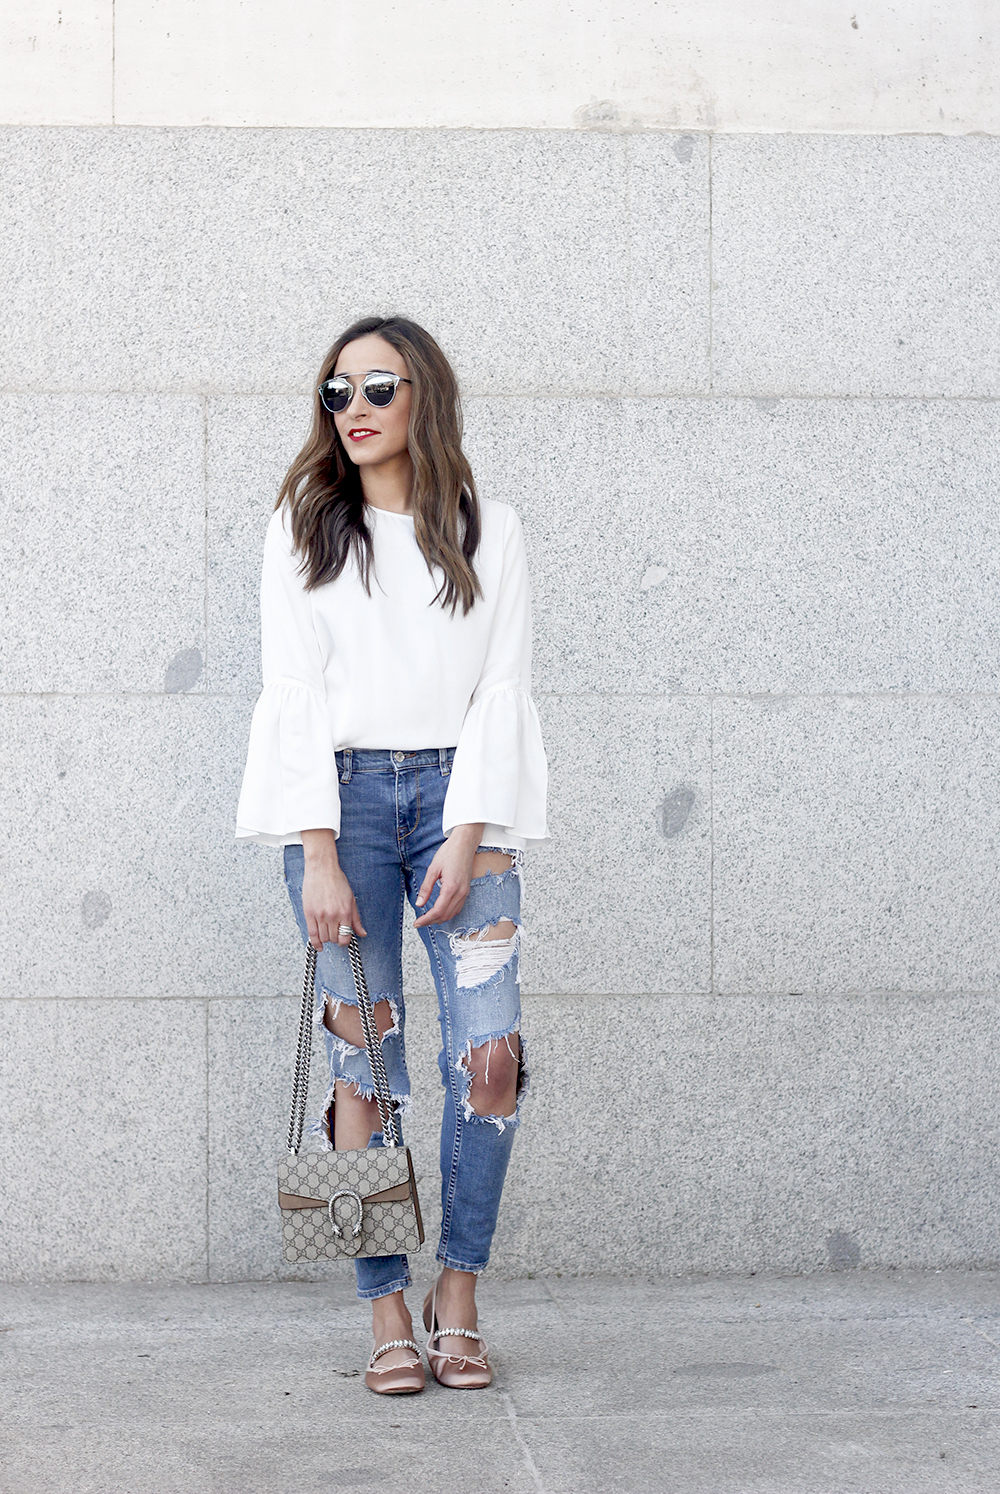 ripped keans gucci bag Jewel ballerinas uterqüe white blouse outfit style fashion10